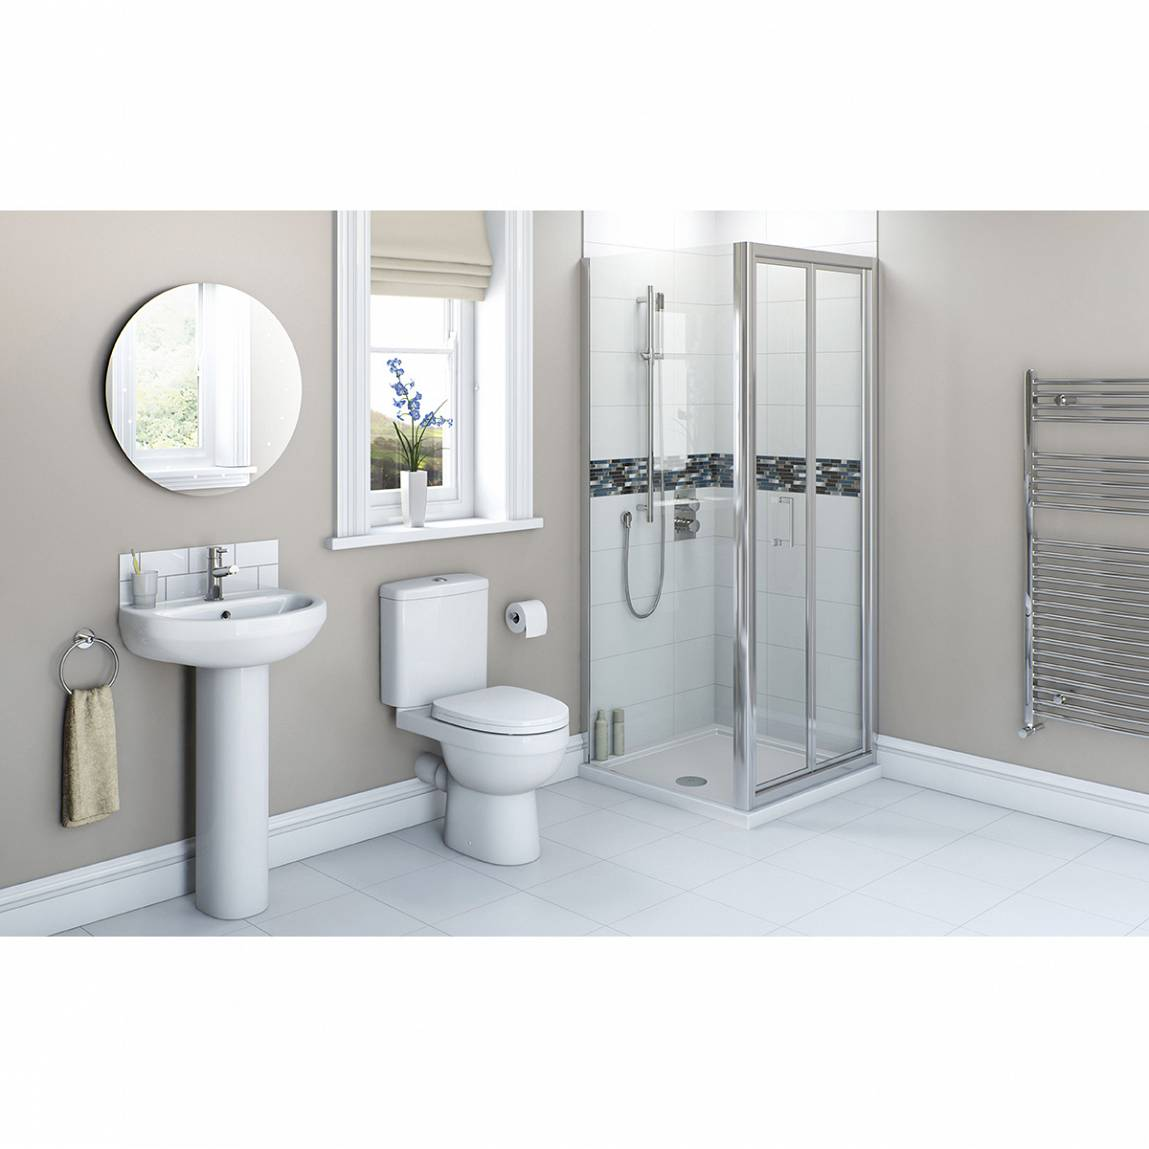 Image of Energy Bathroom set with Bifold Enclosure & Tray 800